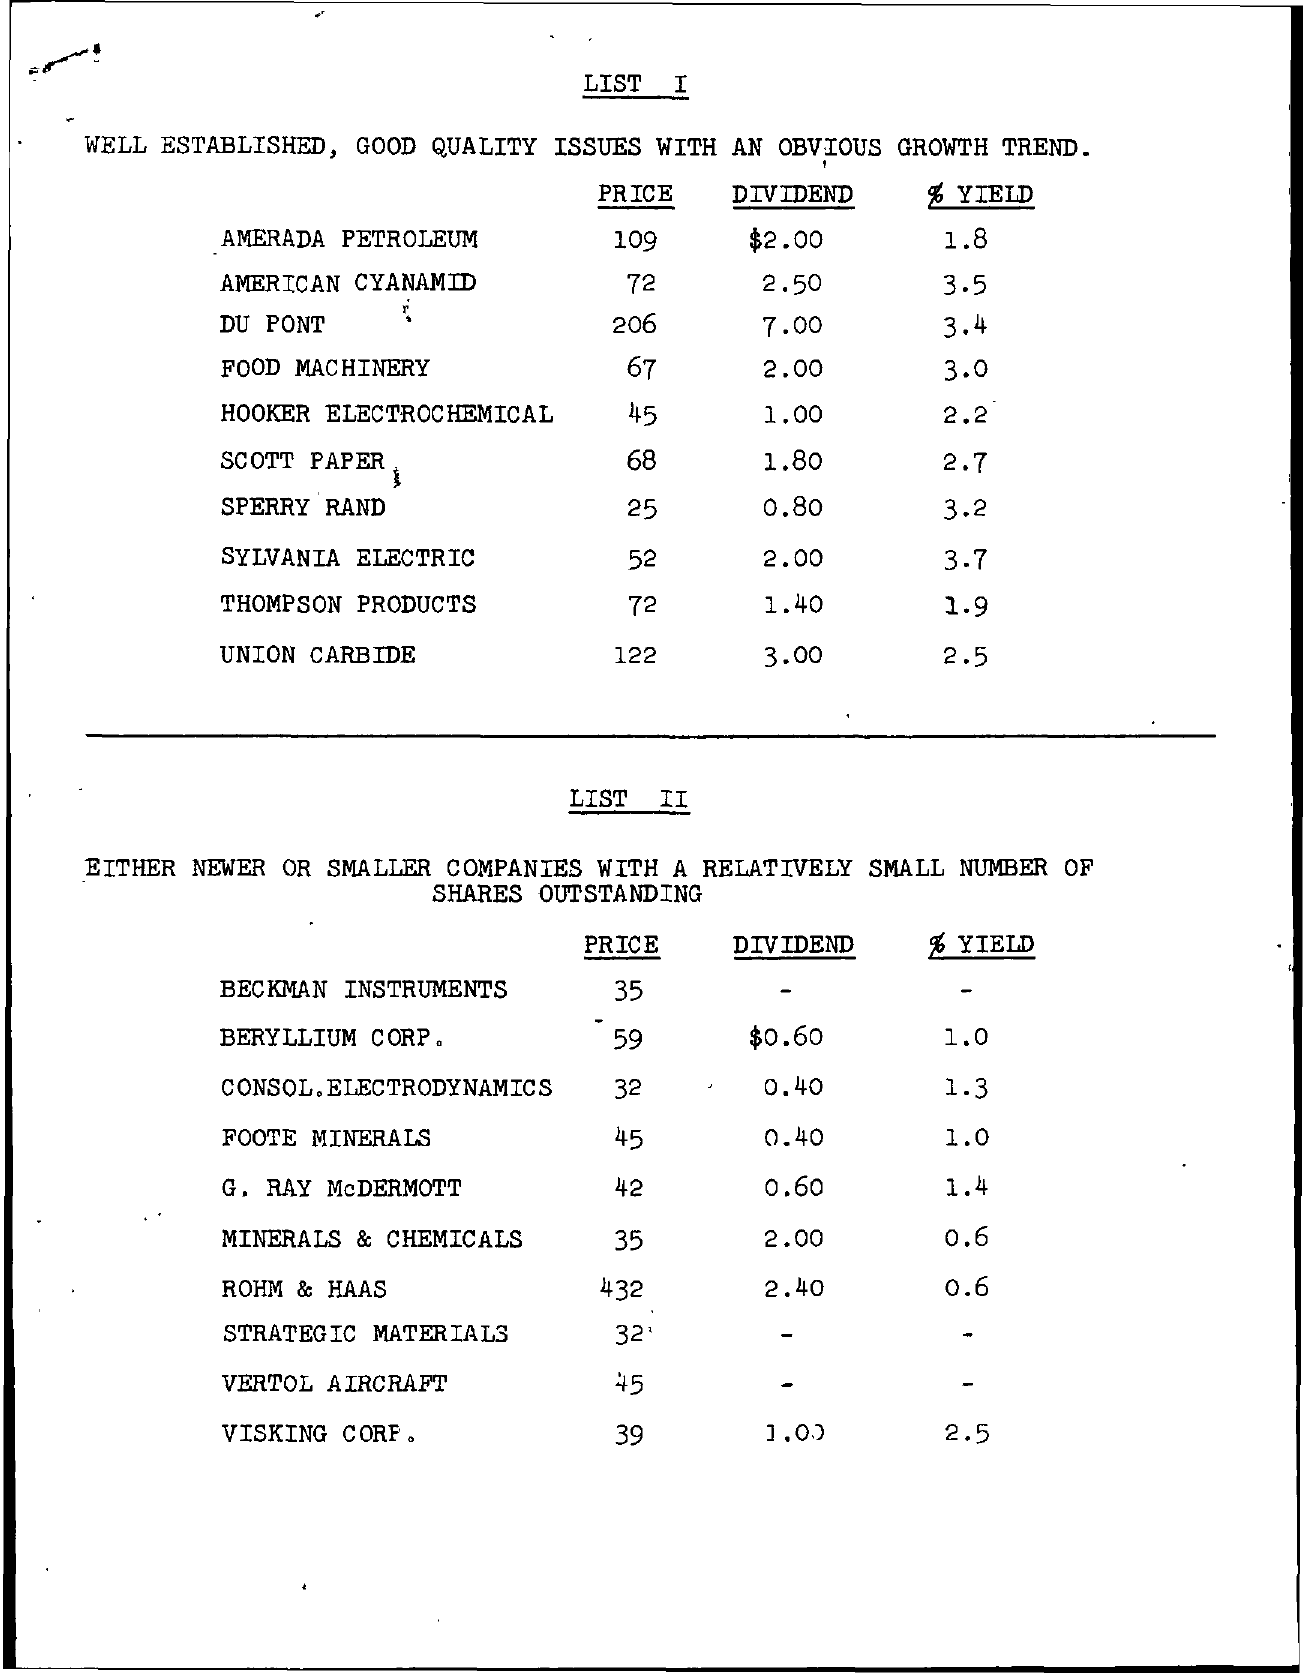 Tabell's Market Letter - June 06, 1958 page 2